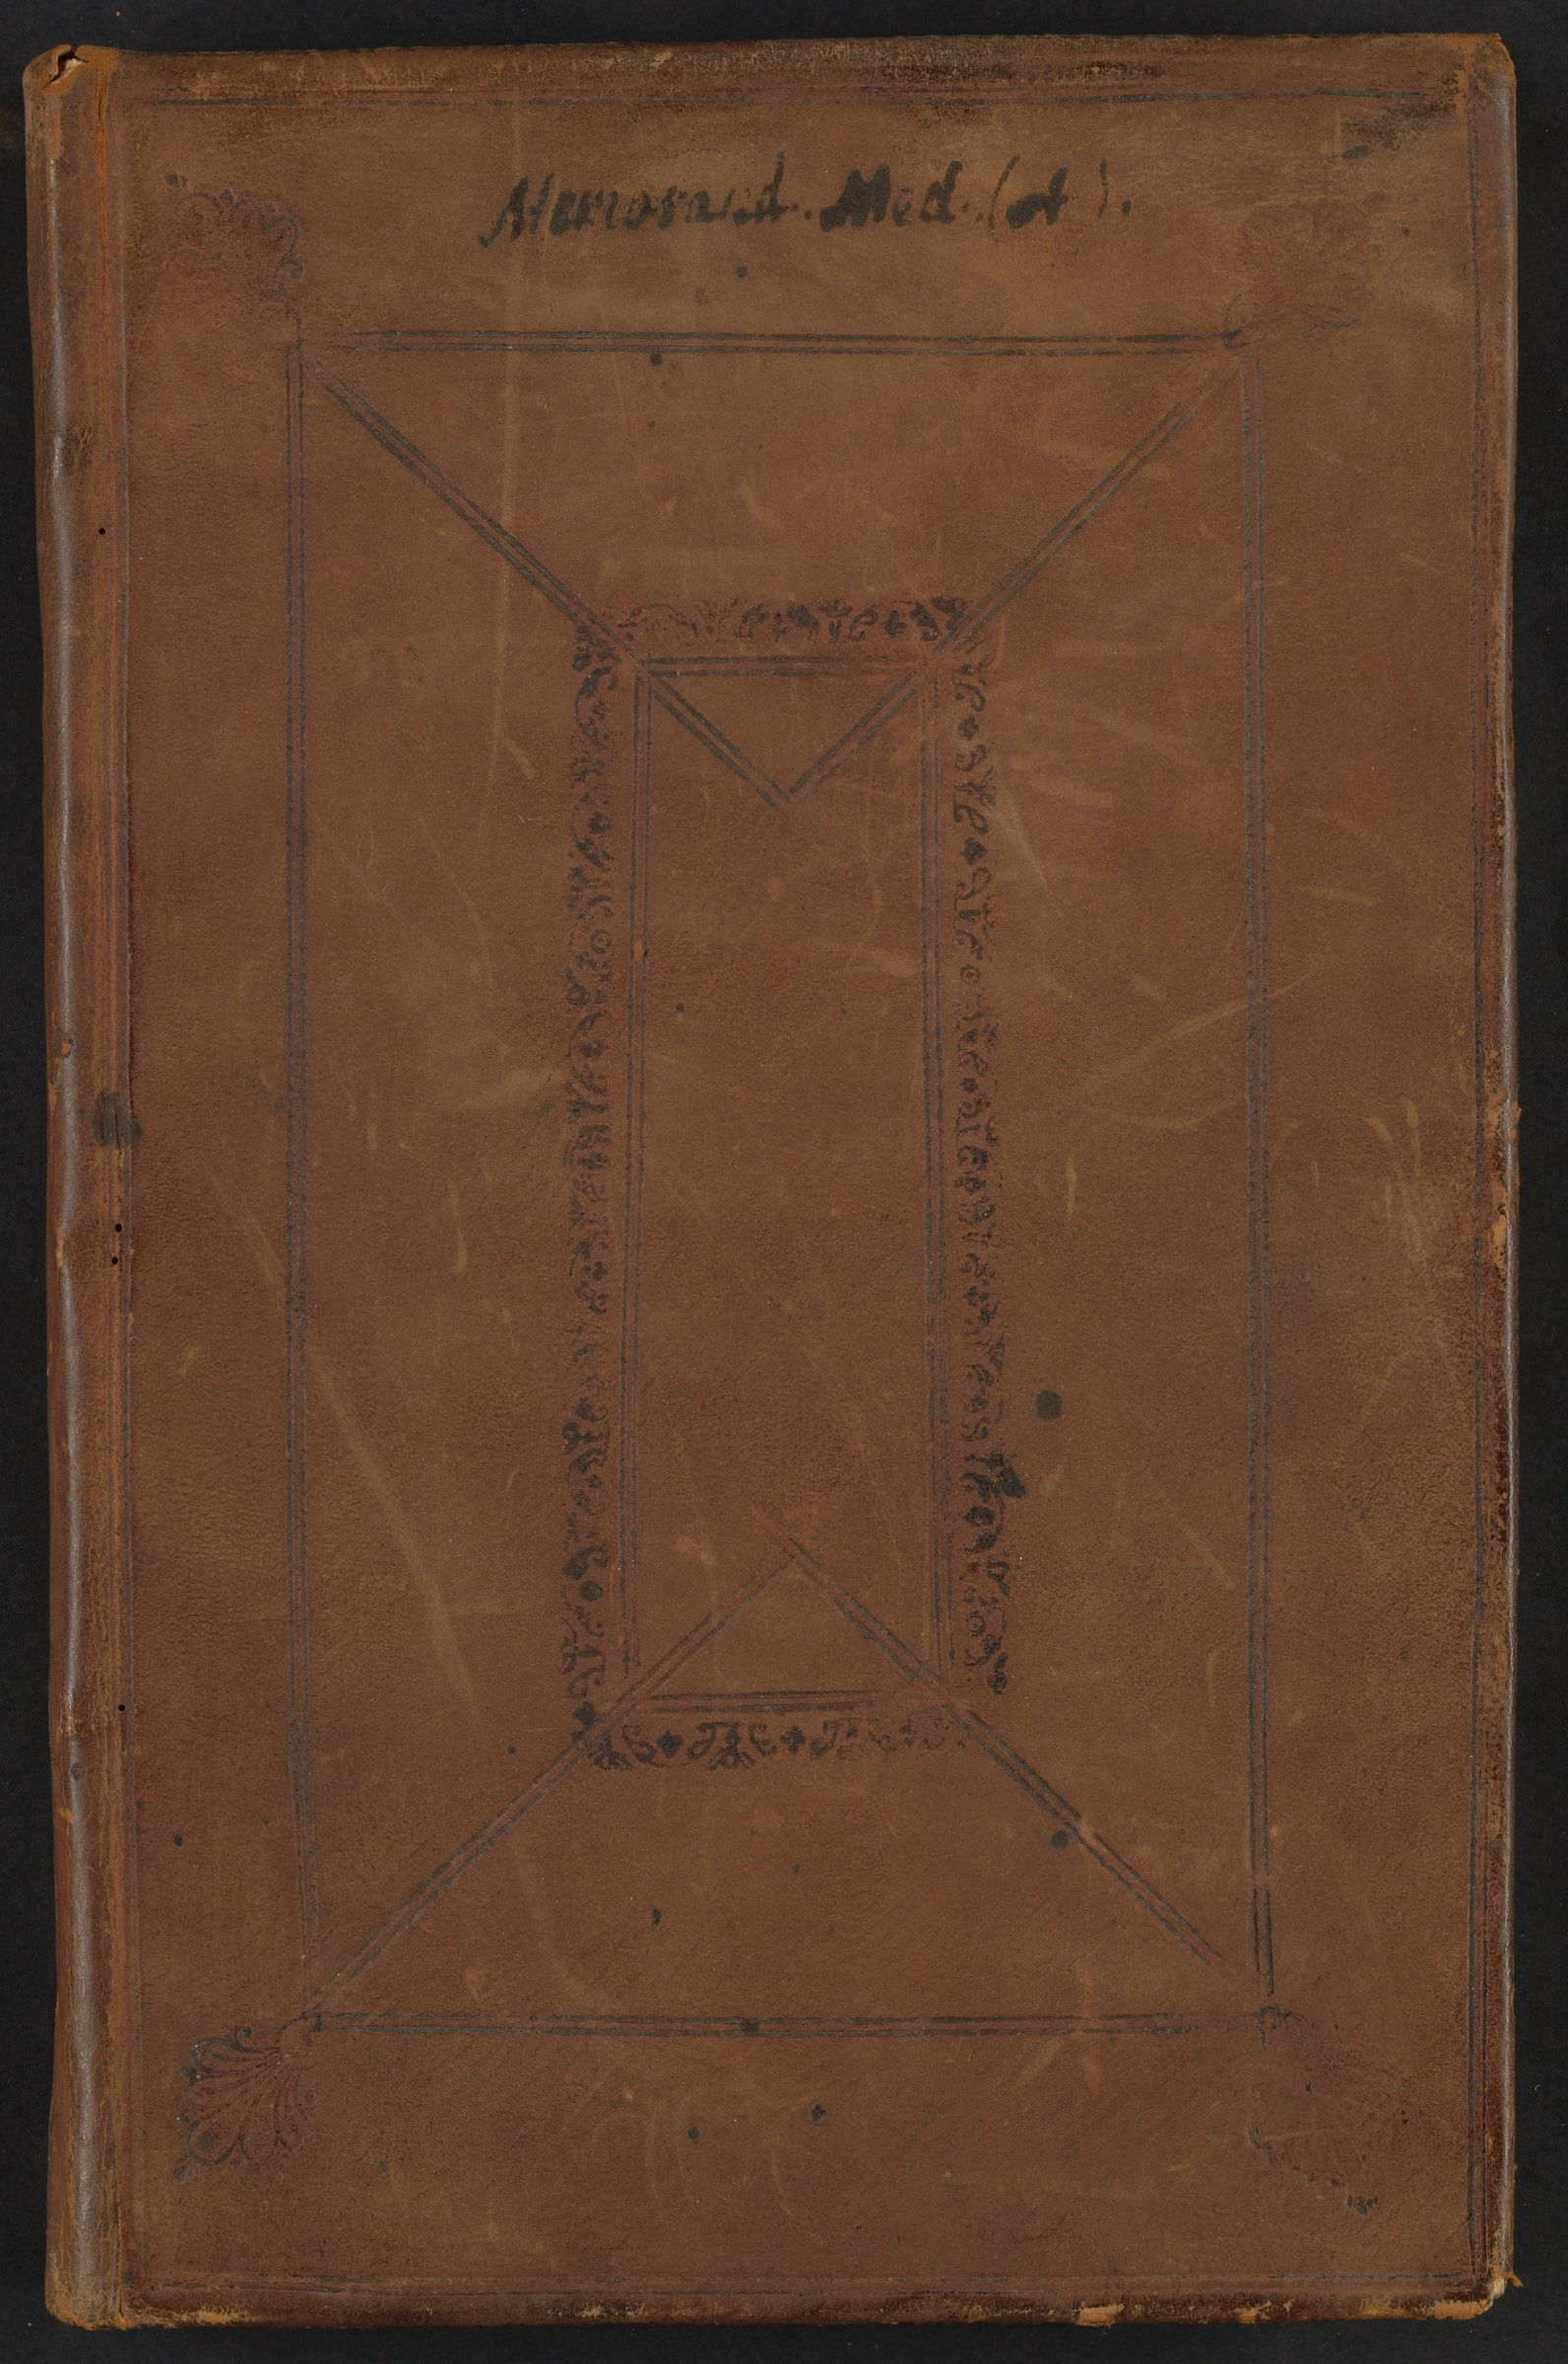 Memoranda Medica of John Perkins, 1750-1773 (inclusive)